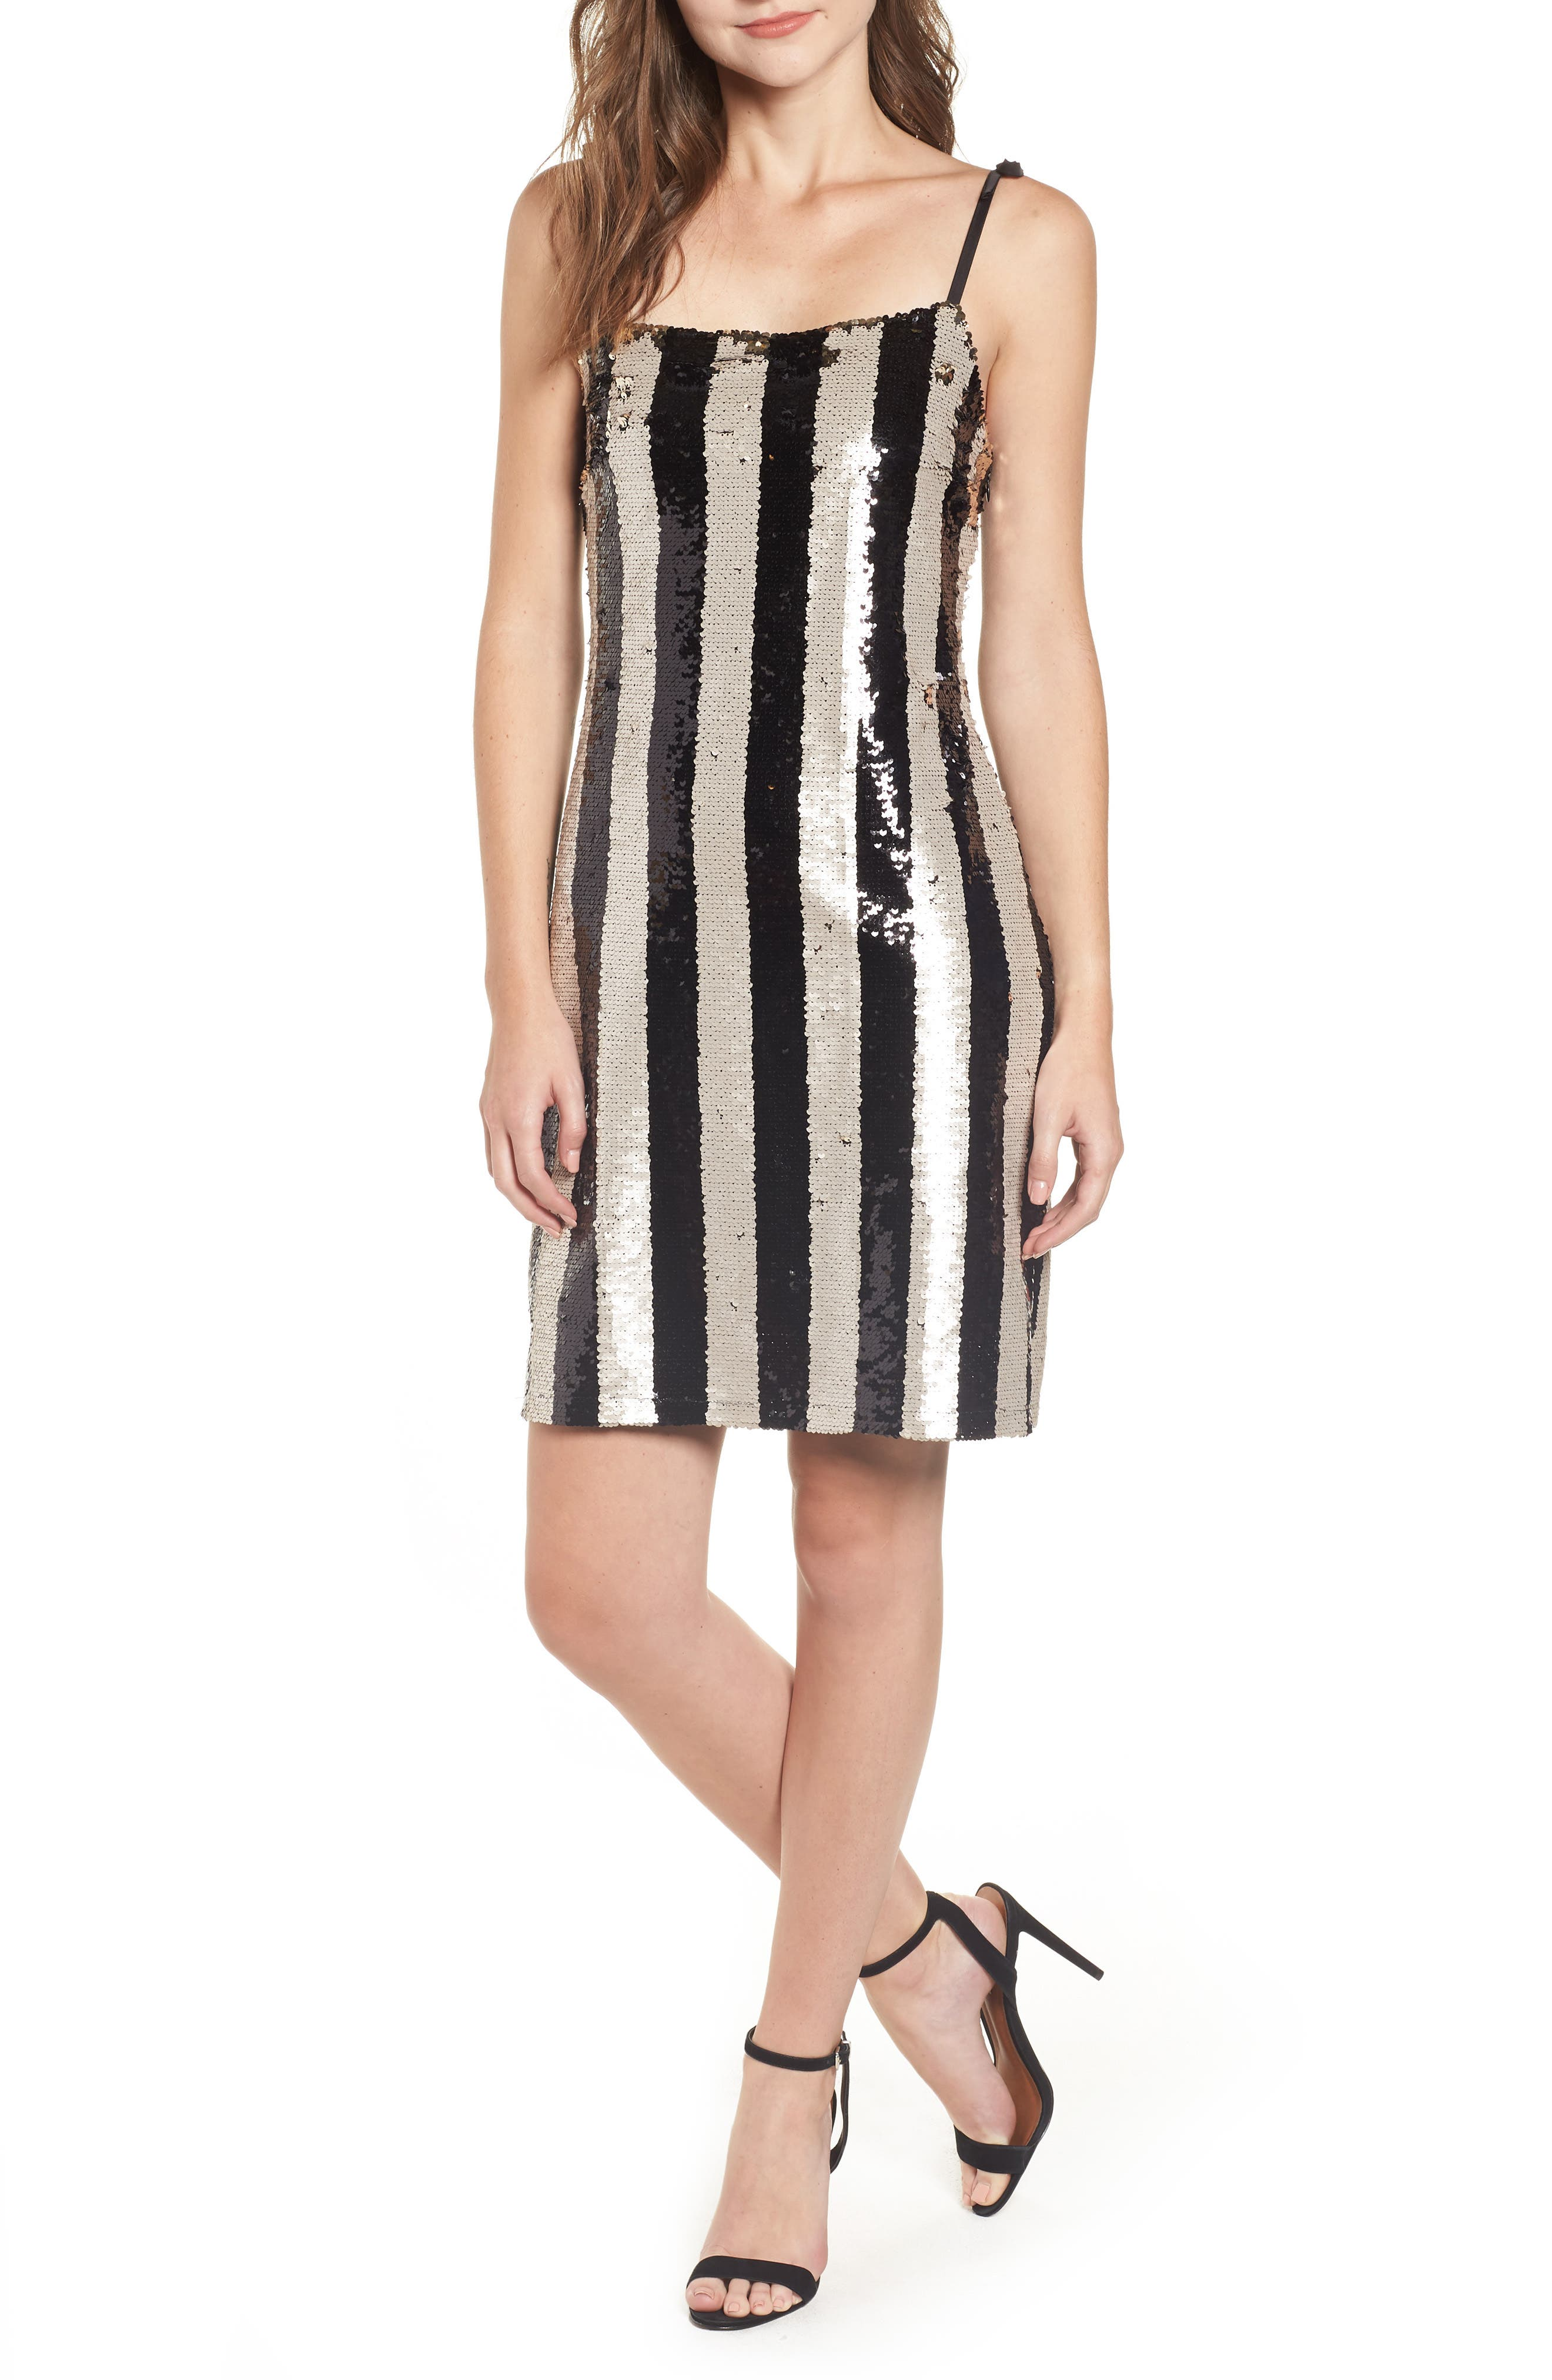 CUPCAKES AND CASHMERE Johan Striped Sequin Cocktail Dress in Black